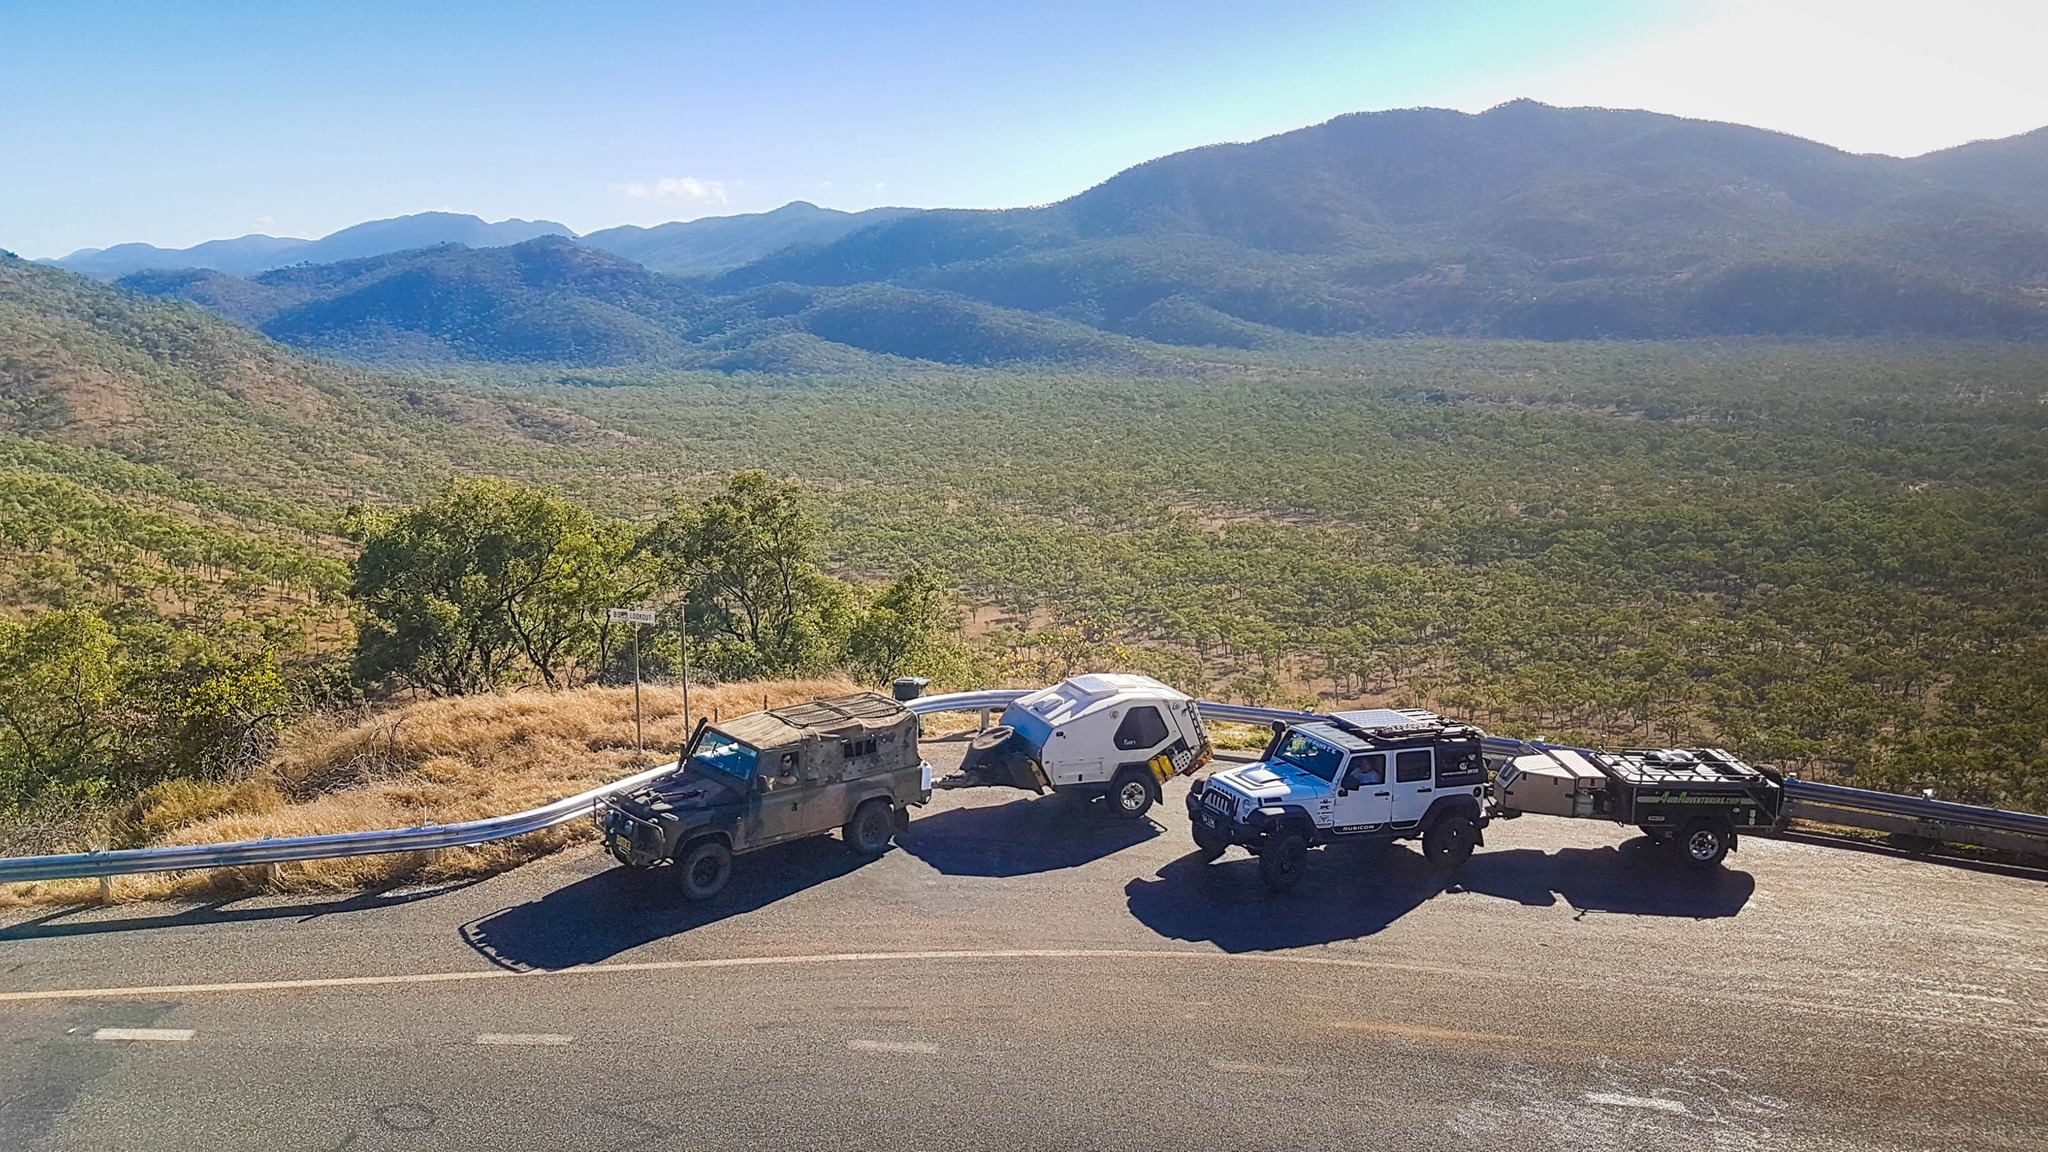 Jeeps parked at a roadside lookout